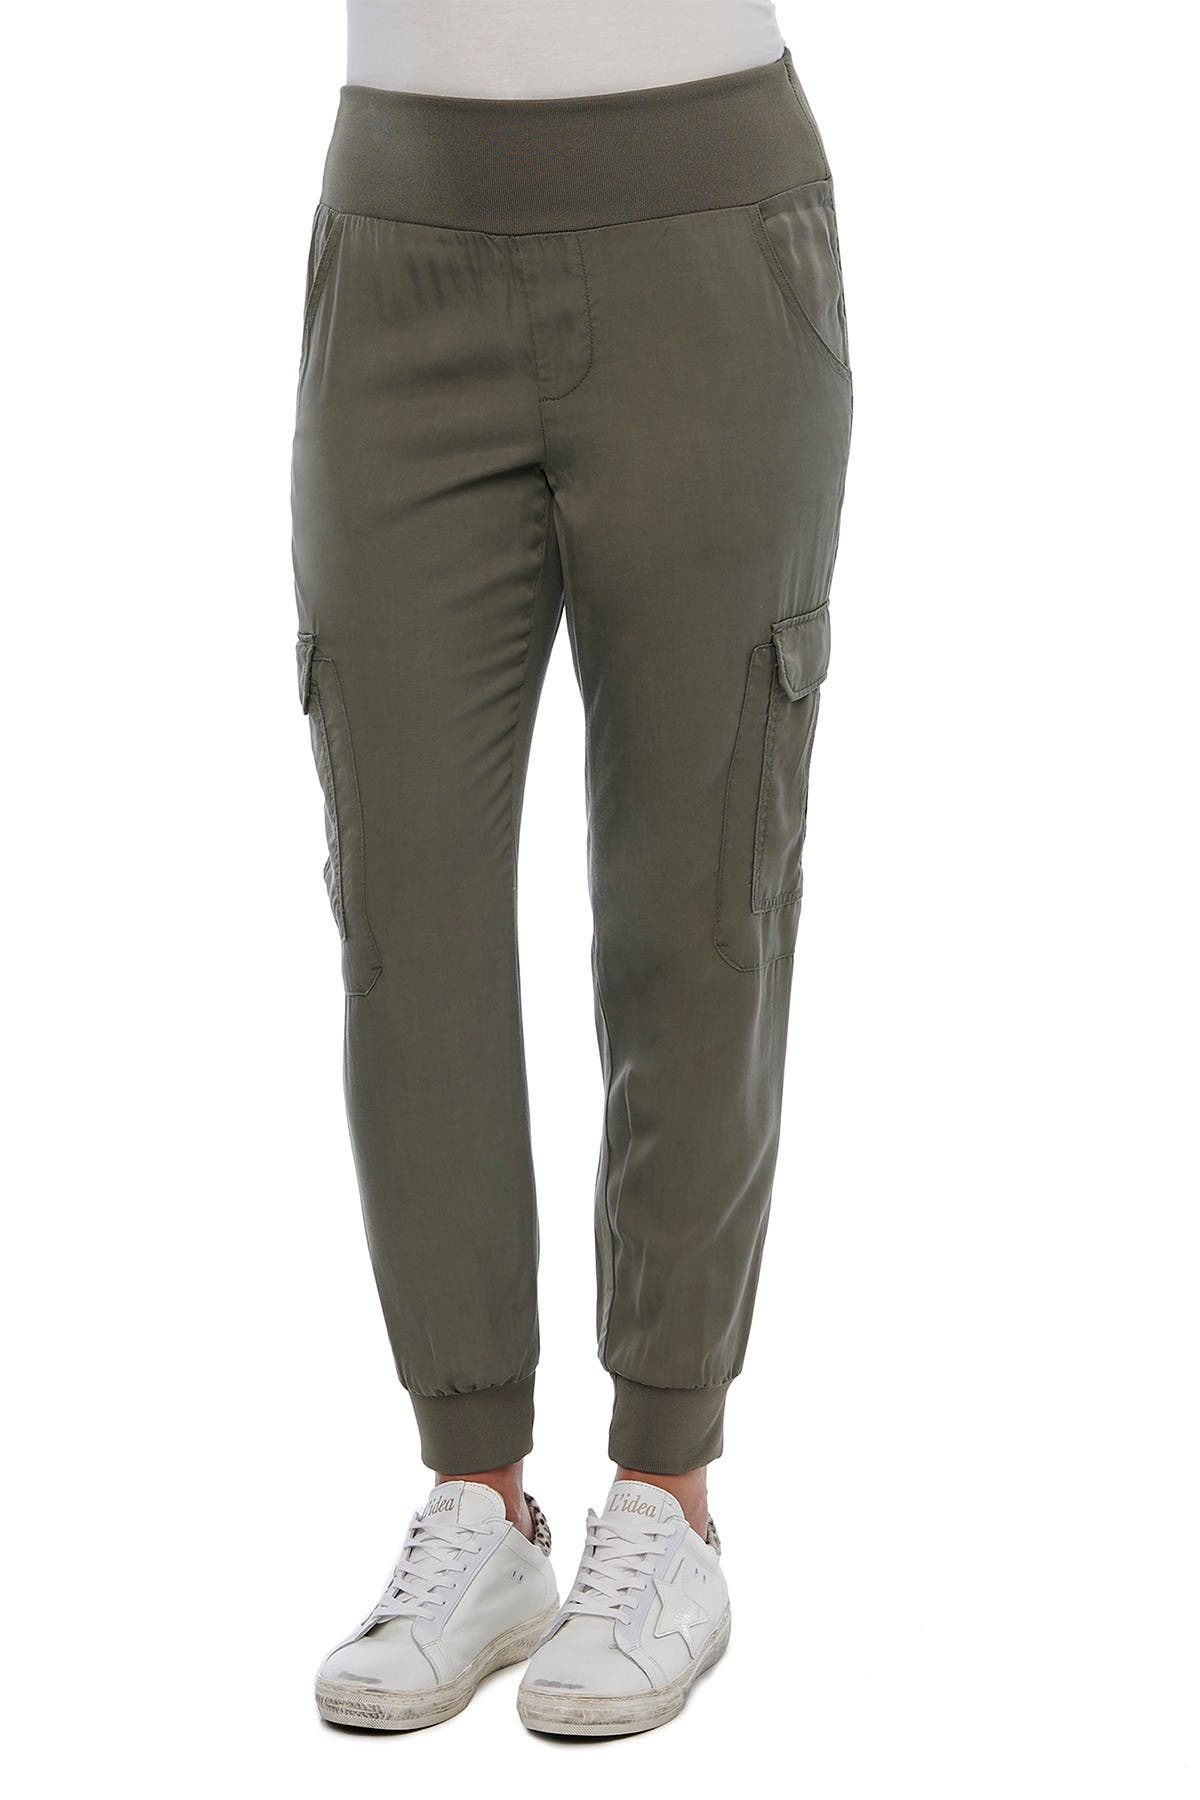 Image of Democracy Patch Pocket Utility Joggers